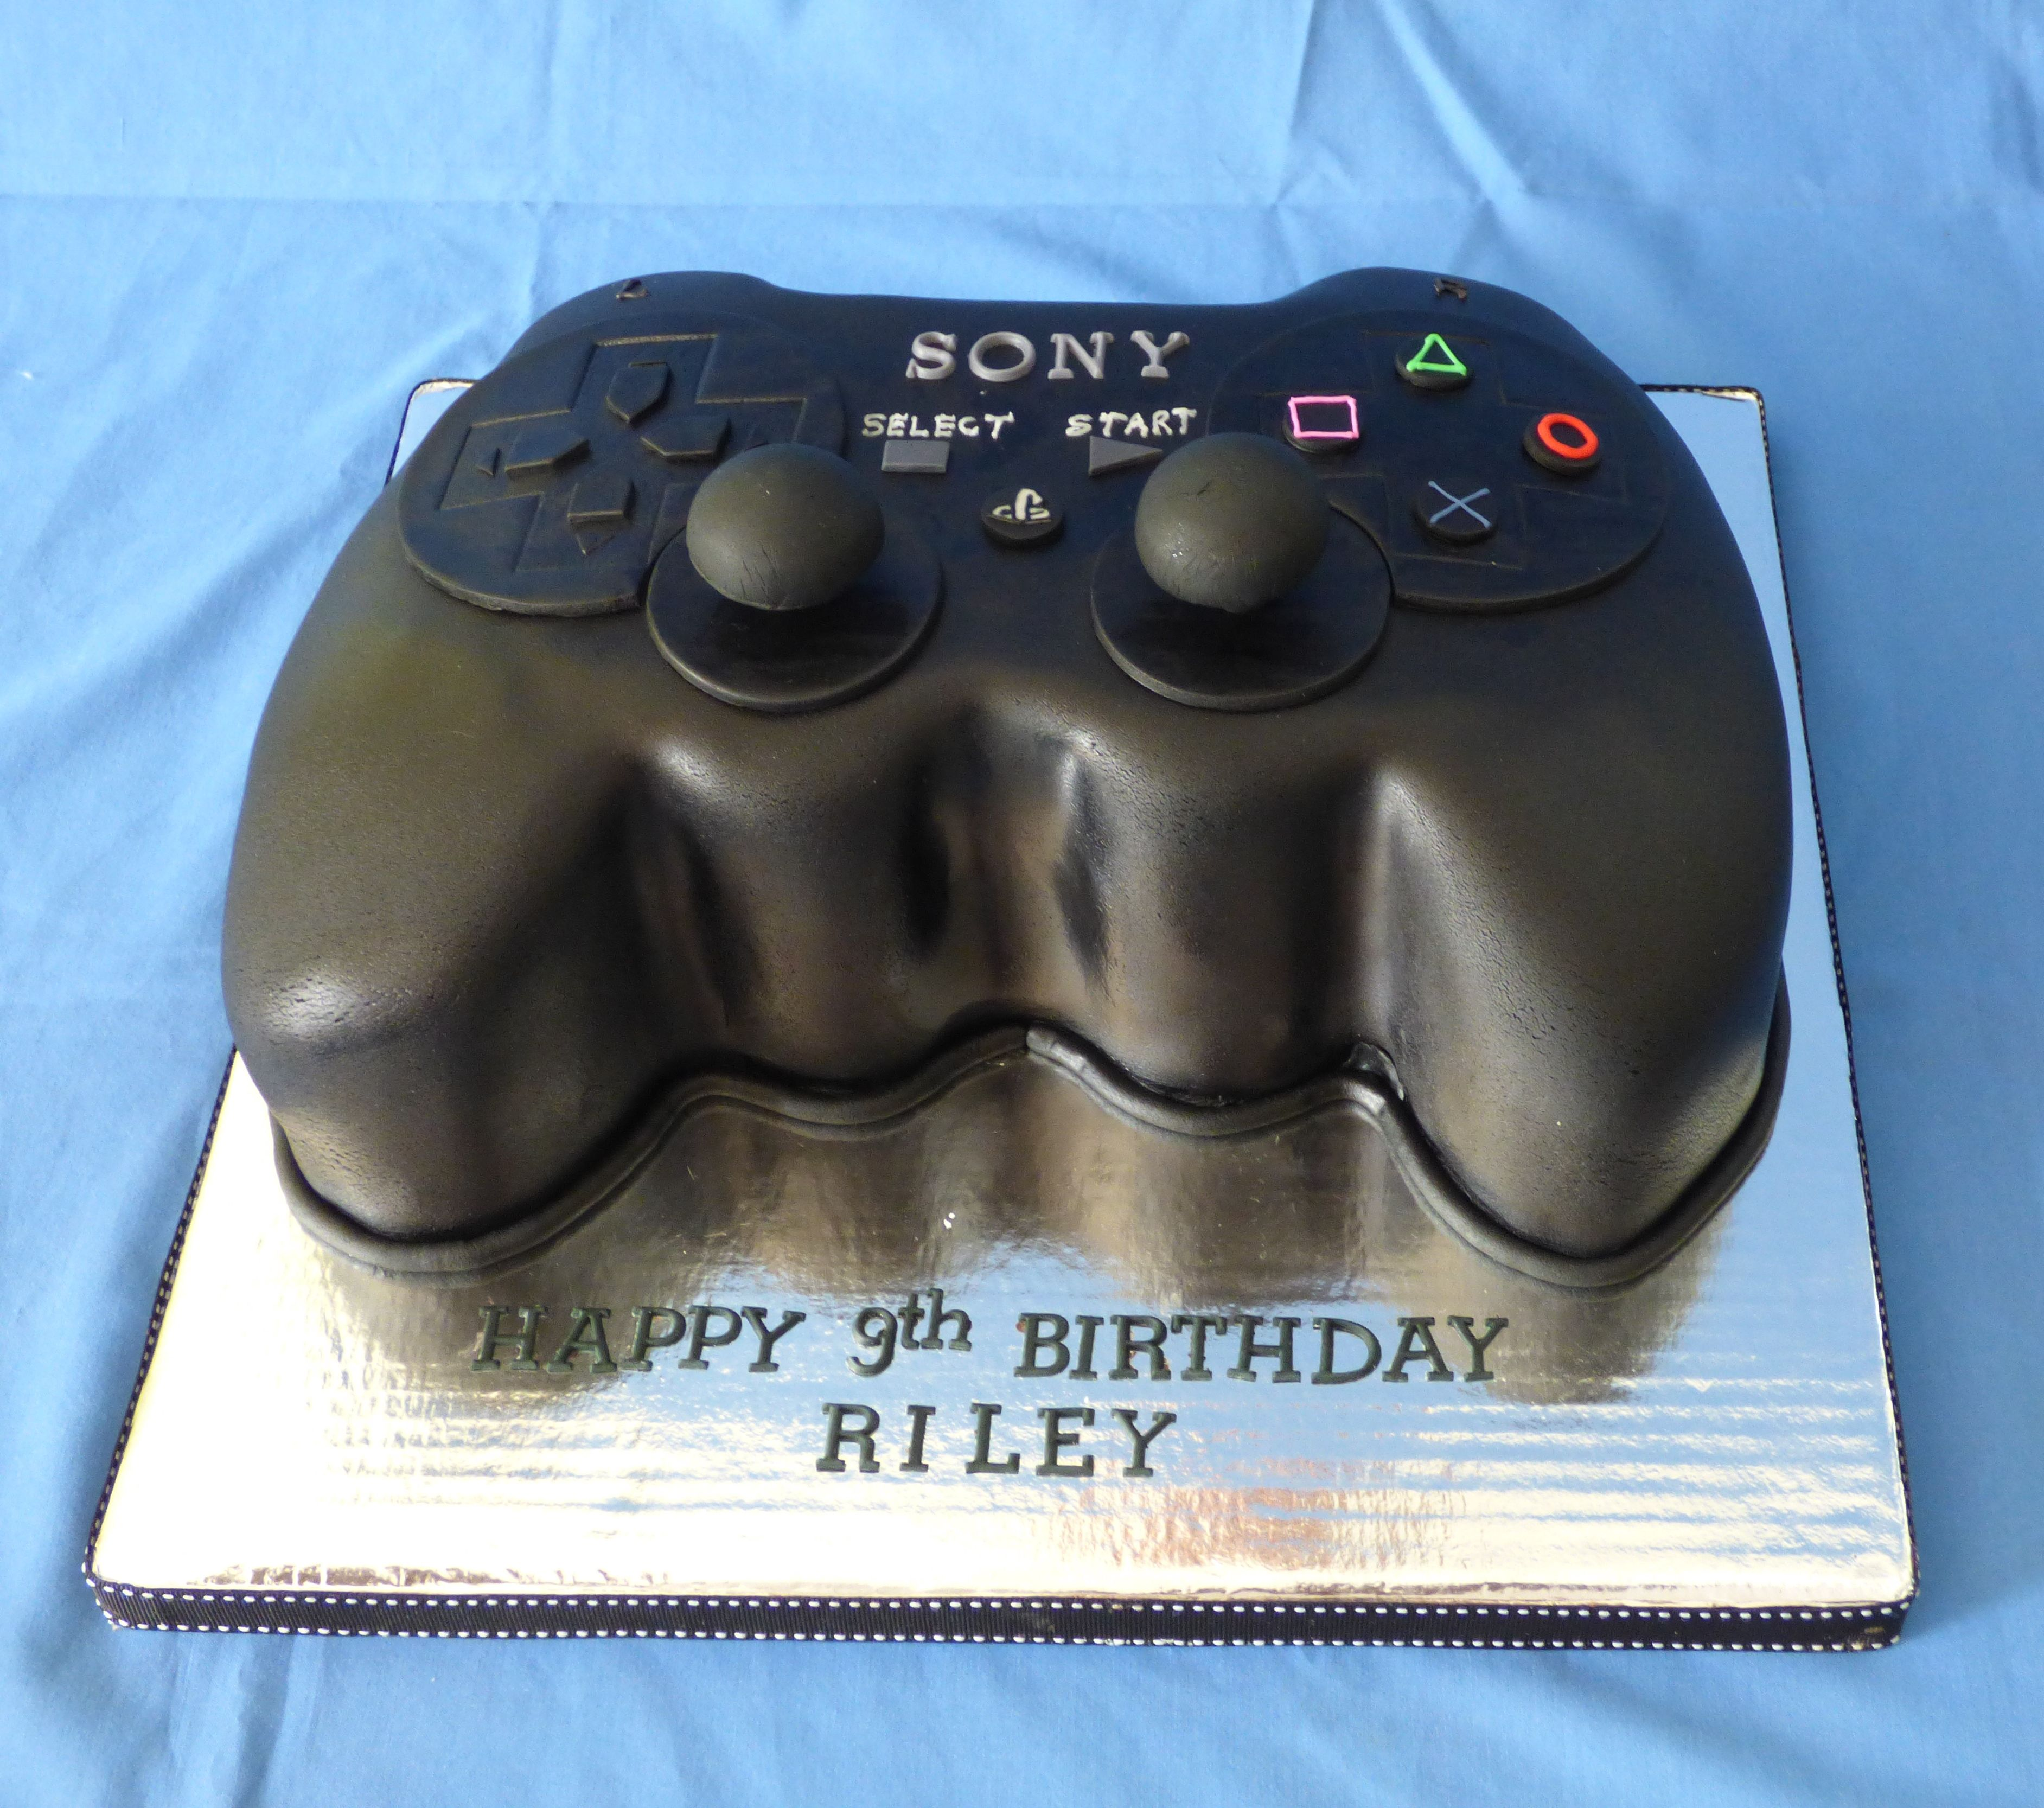 Playstation Controller Chocolate Cake For A Gamer Theme Party Themed Cakes Cake Edible